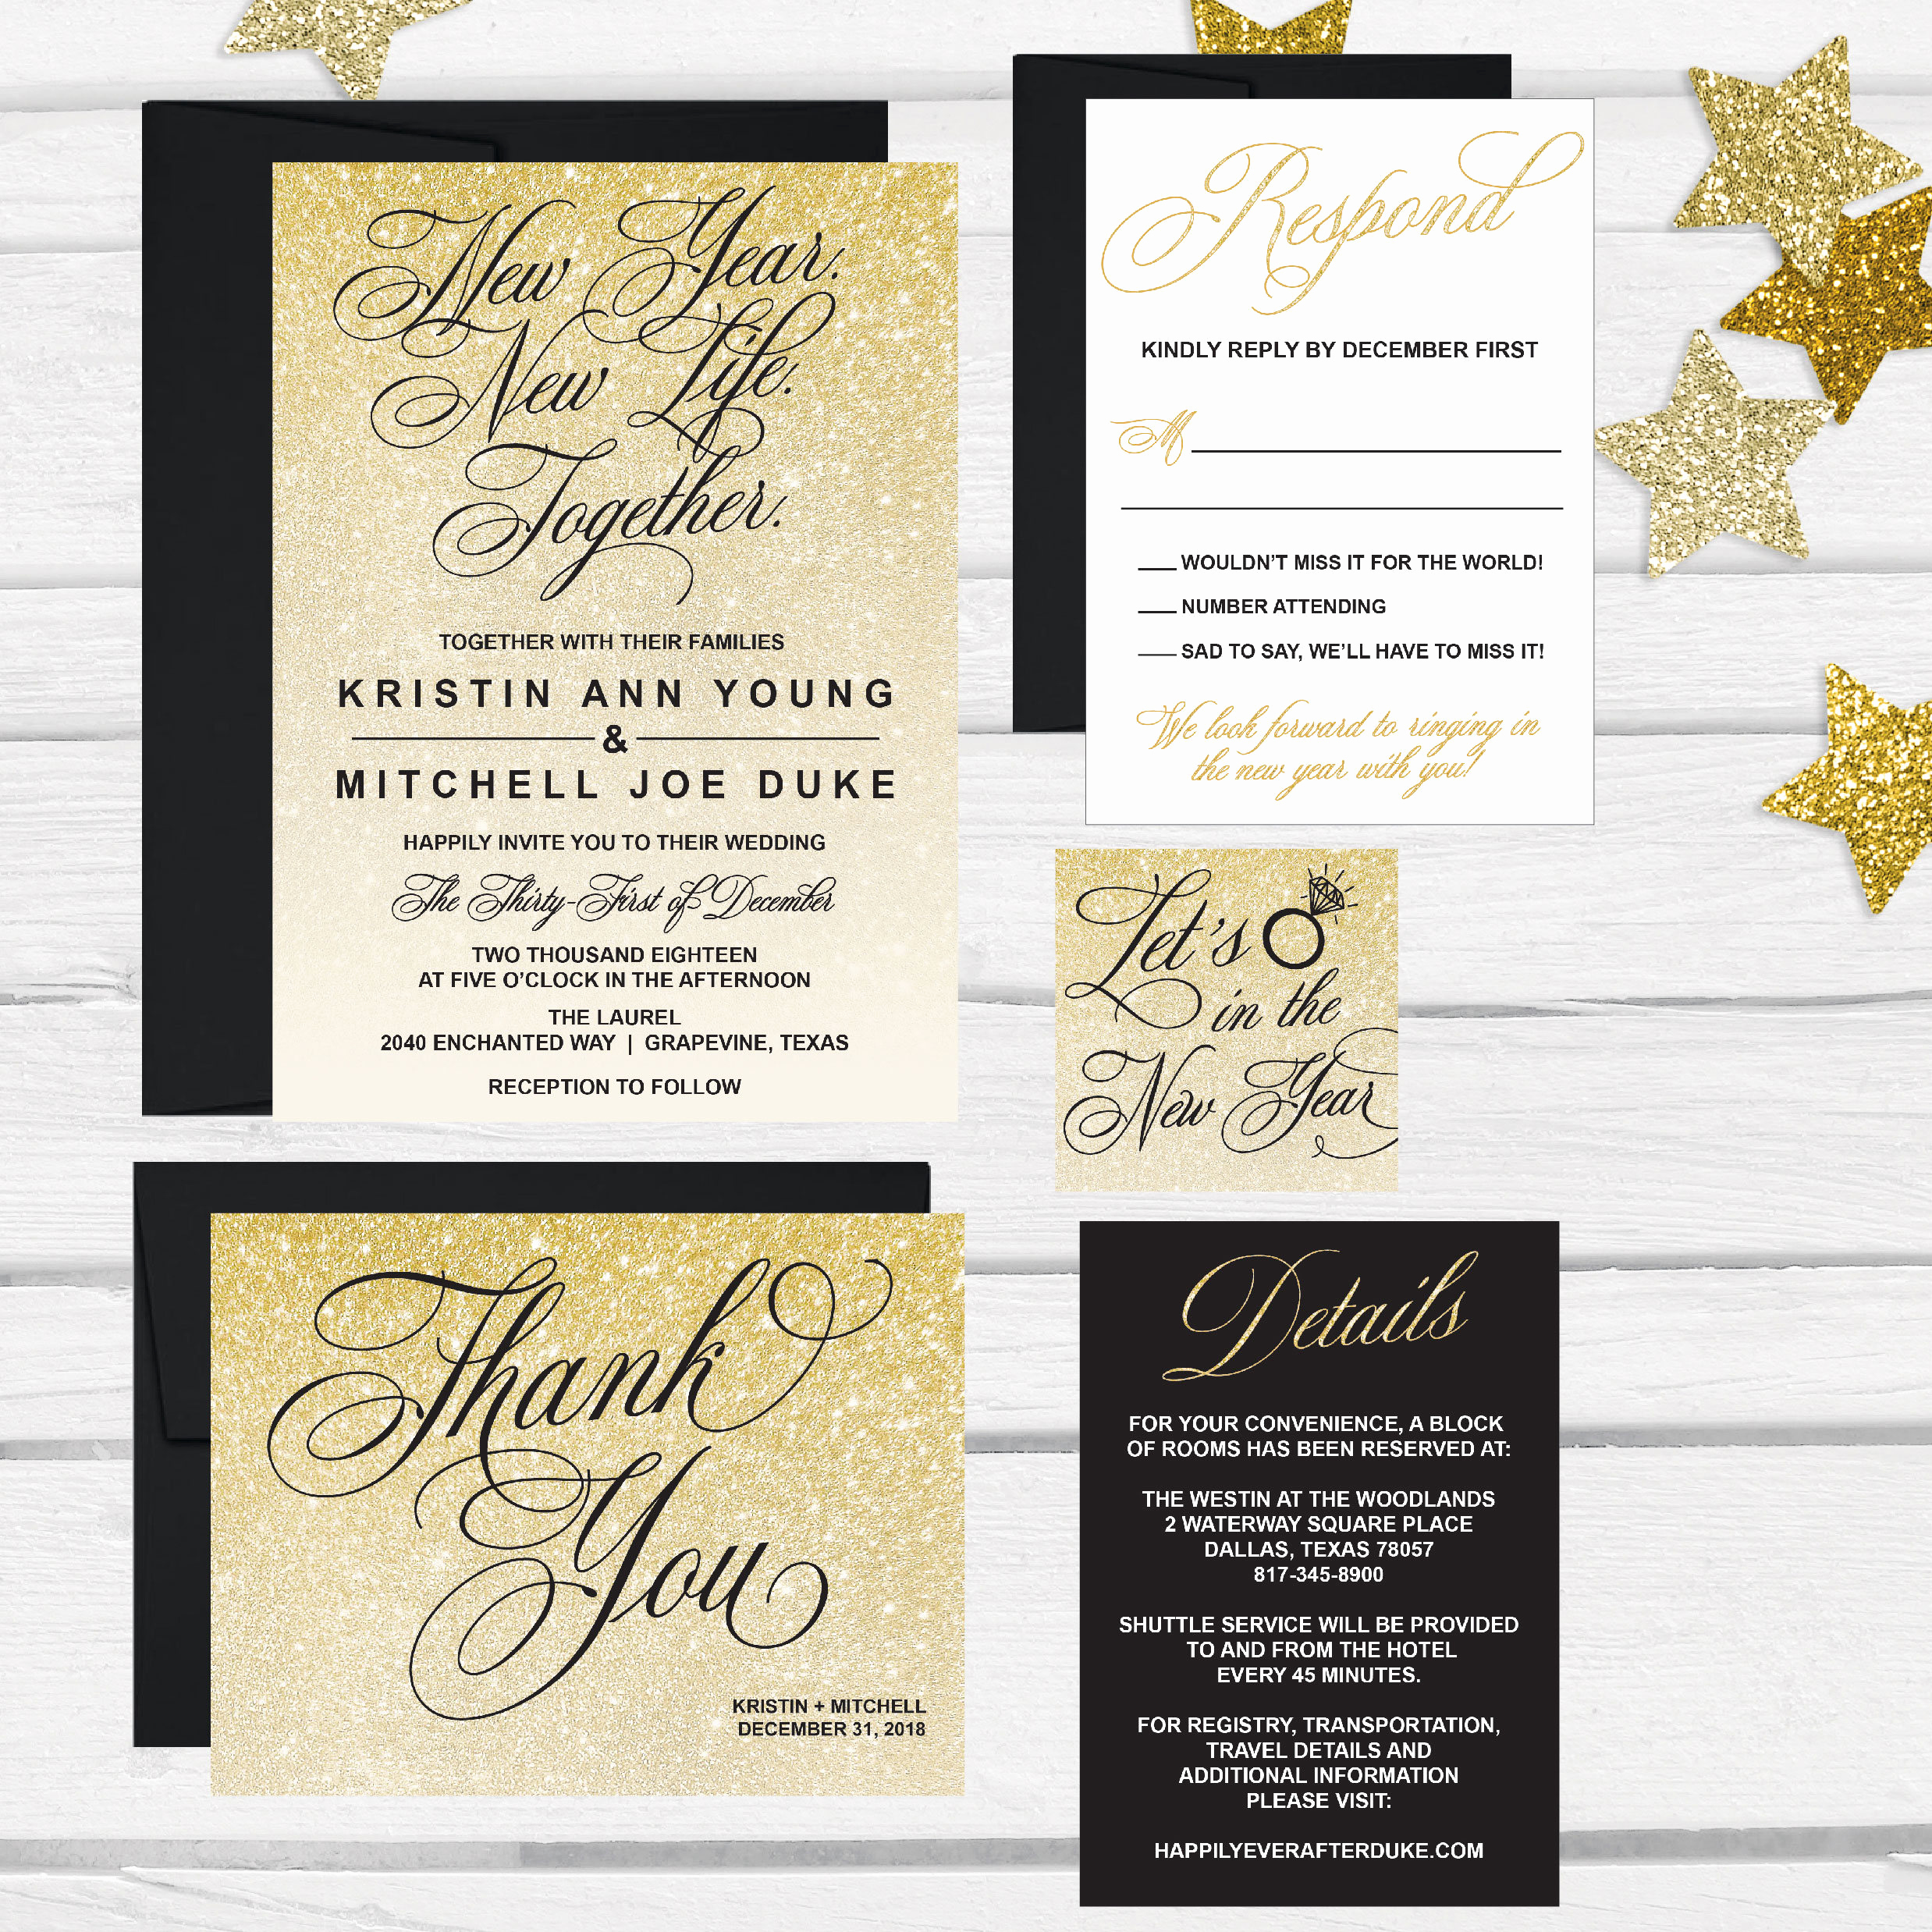 New Years Eve Invitation Template Awesome Elegant New Years Eve Wedding Invitation Template Glitter